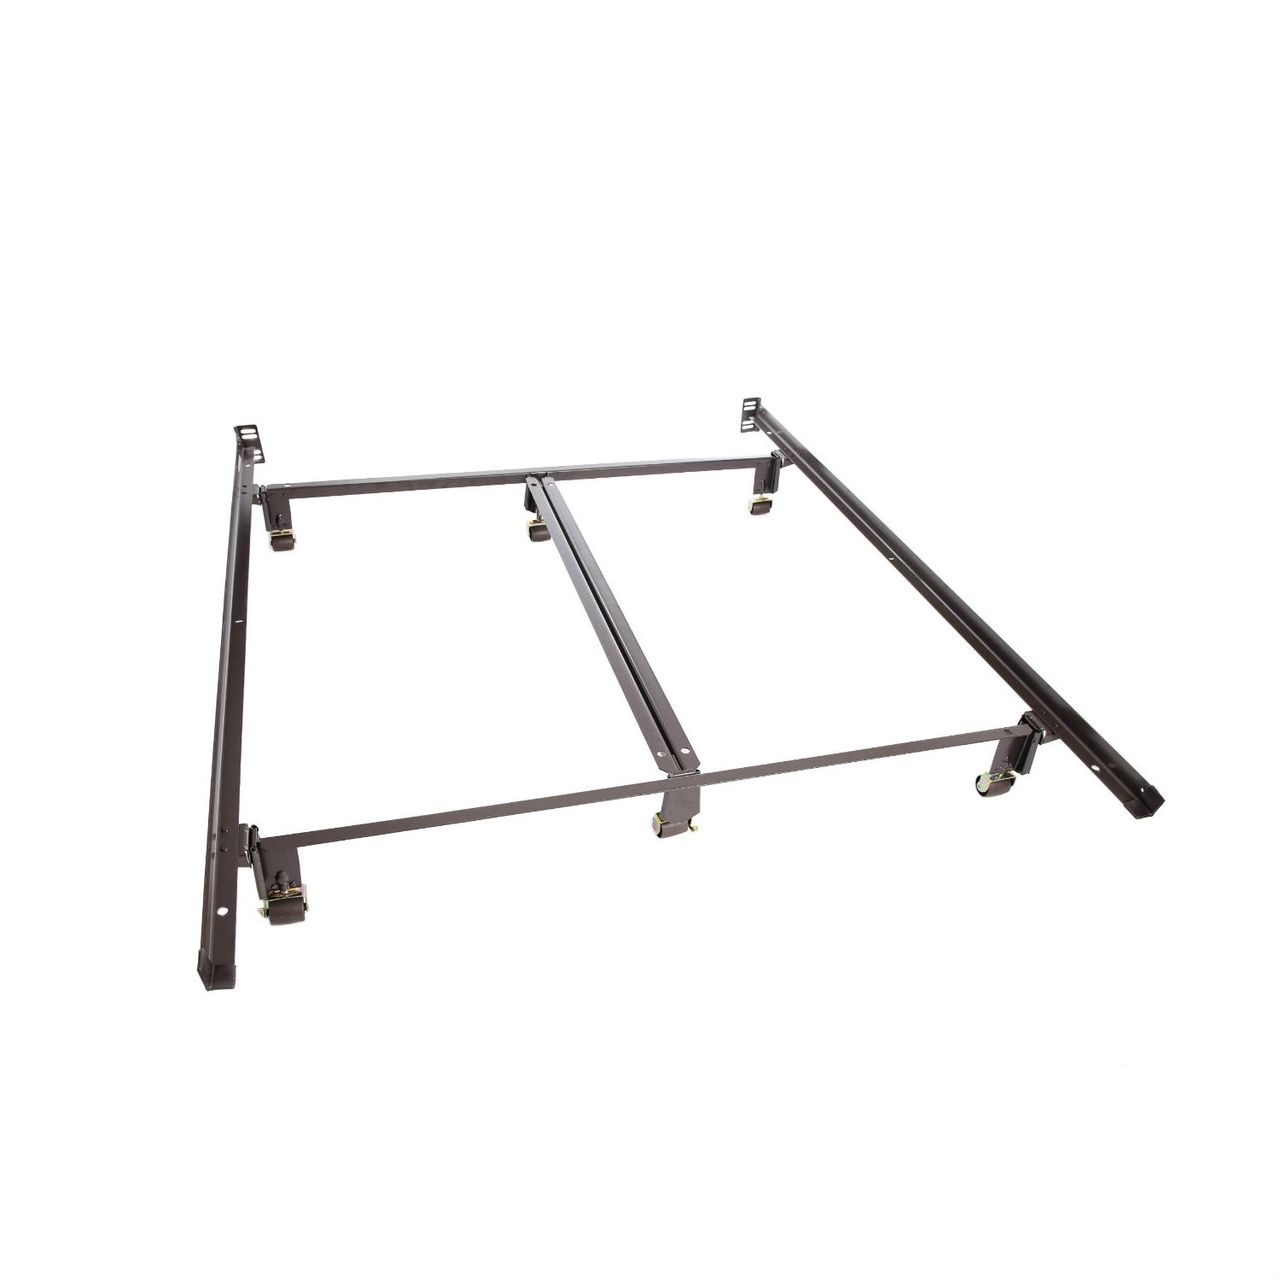 Queen Size Metal Bed Frame With Double Center Rail For Maximum